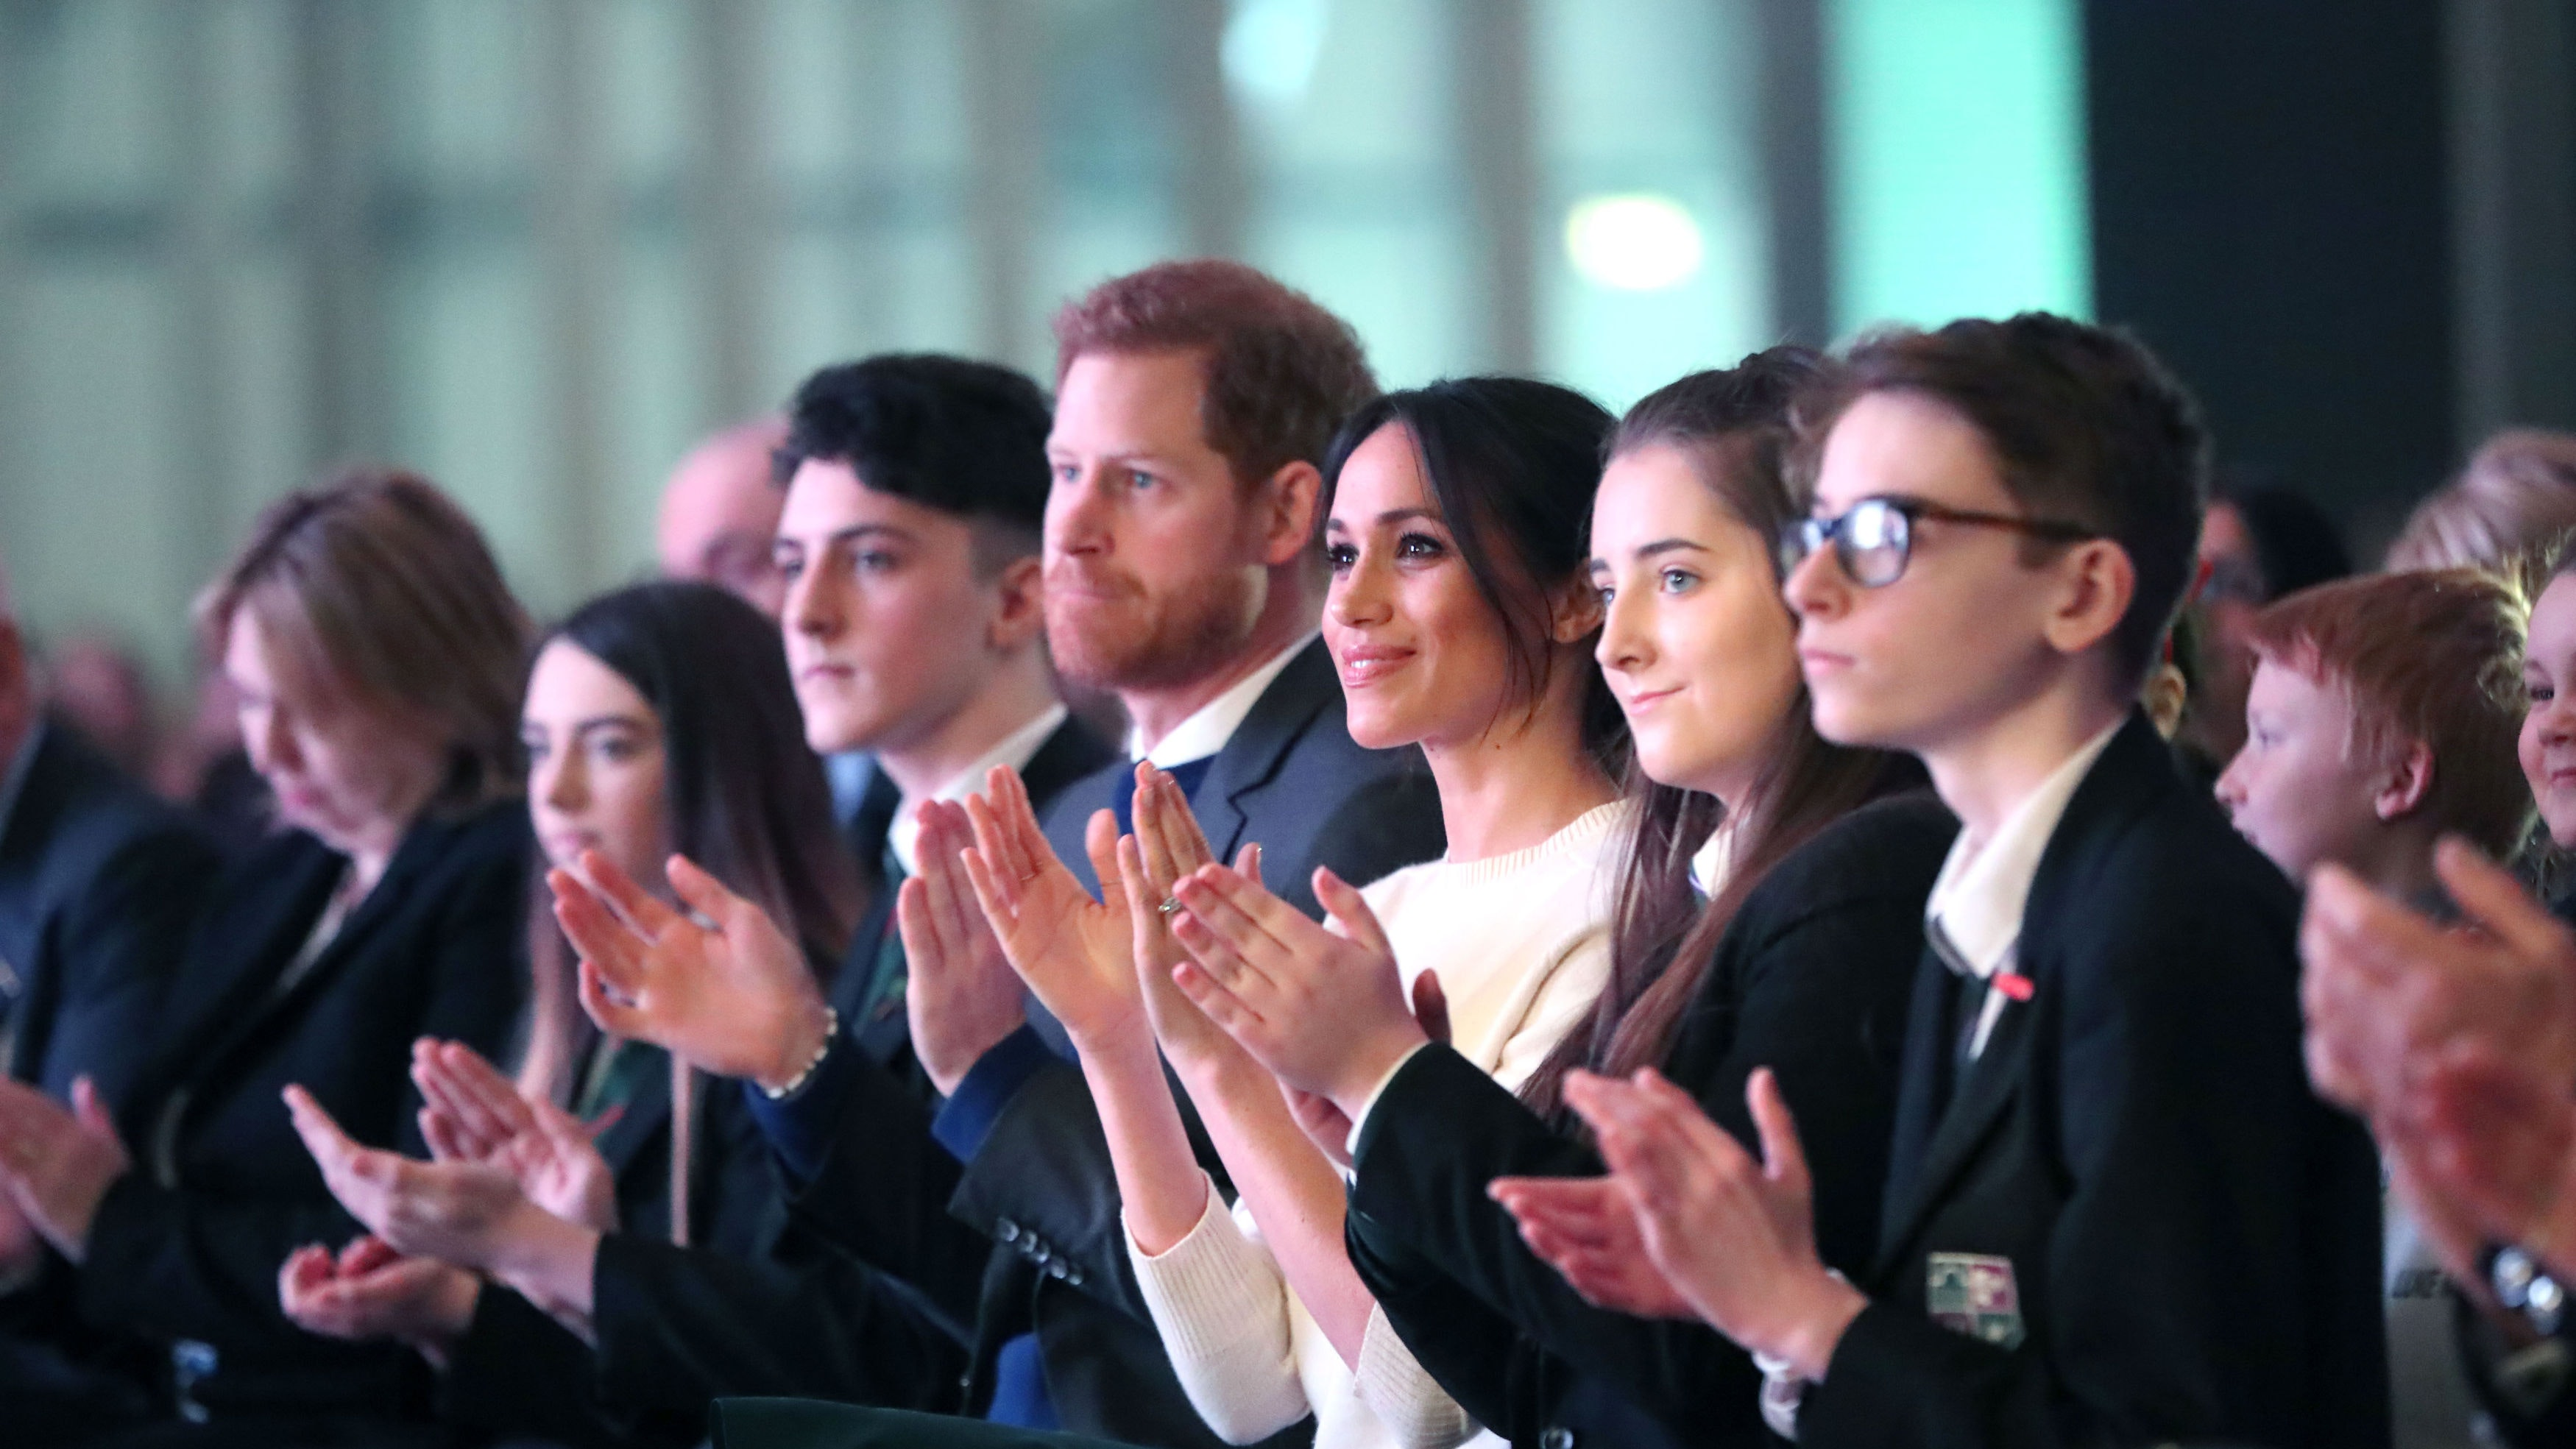 Harry and Meghan delight crowds in Belfast with pub visit